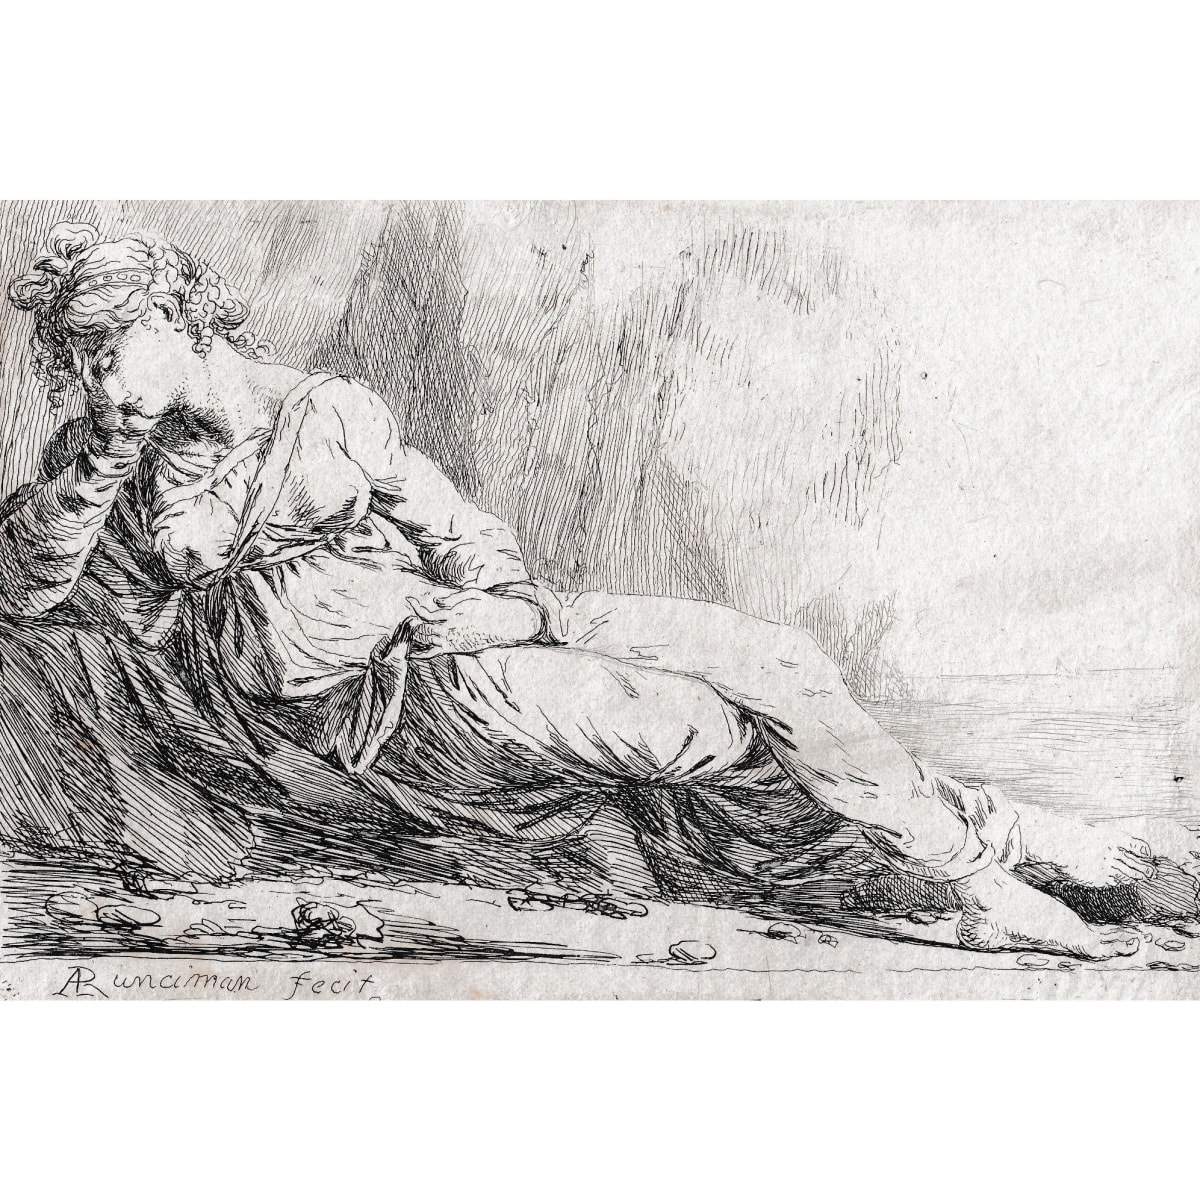 "Alexander Runciman Ariadne abandoned on Naxos, printed c.1820 signed in plate, trimmed to the platemark etching 5 1/2 x 4 inches etching Published 1819-22 by W. Lewis, London for ""A Collection of Two Hundred Original Etchings"""